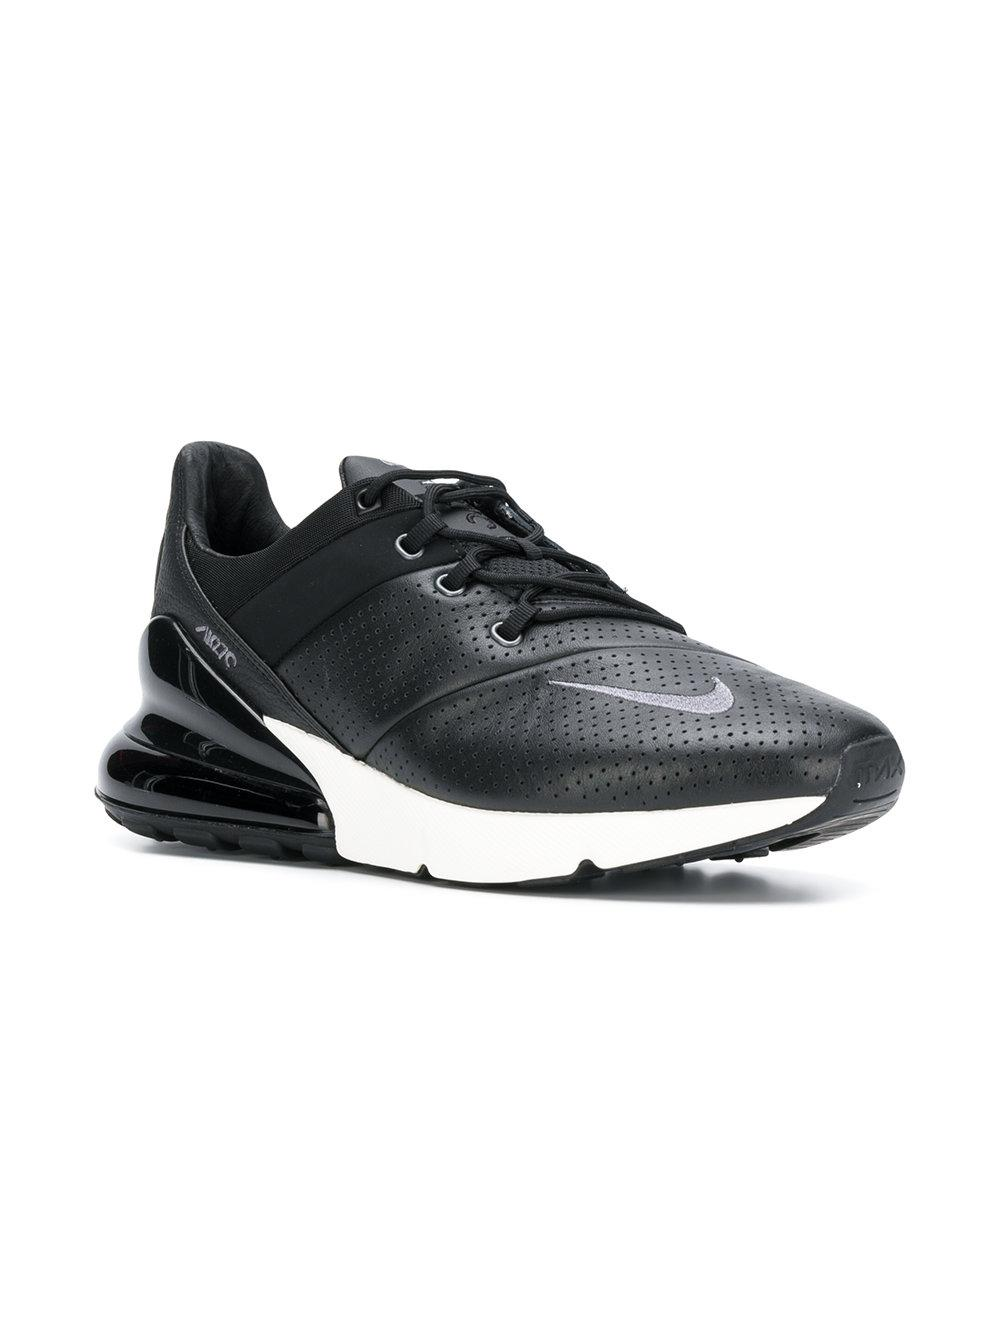 the best attitude 6bd2f 6ad9f Nike Airmax 270 Trainers in Black for Men - Lyst